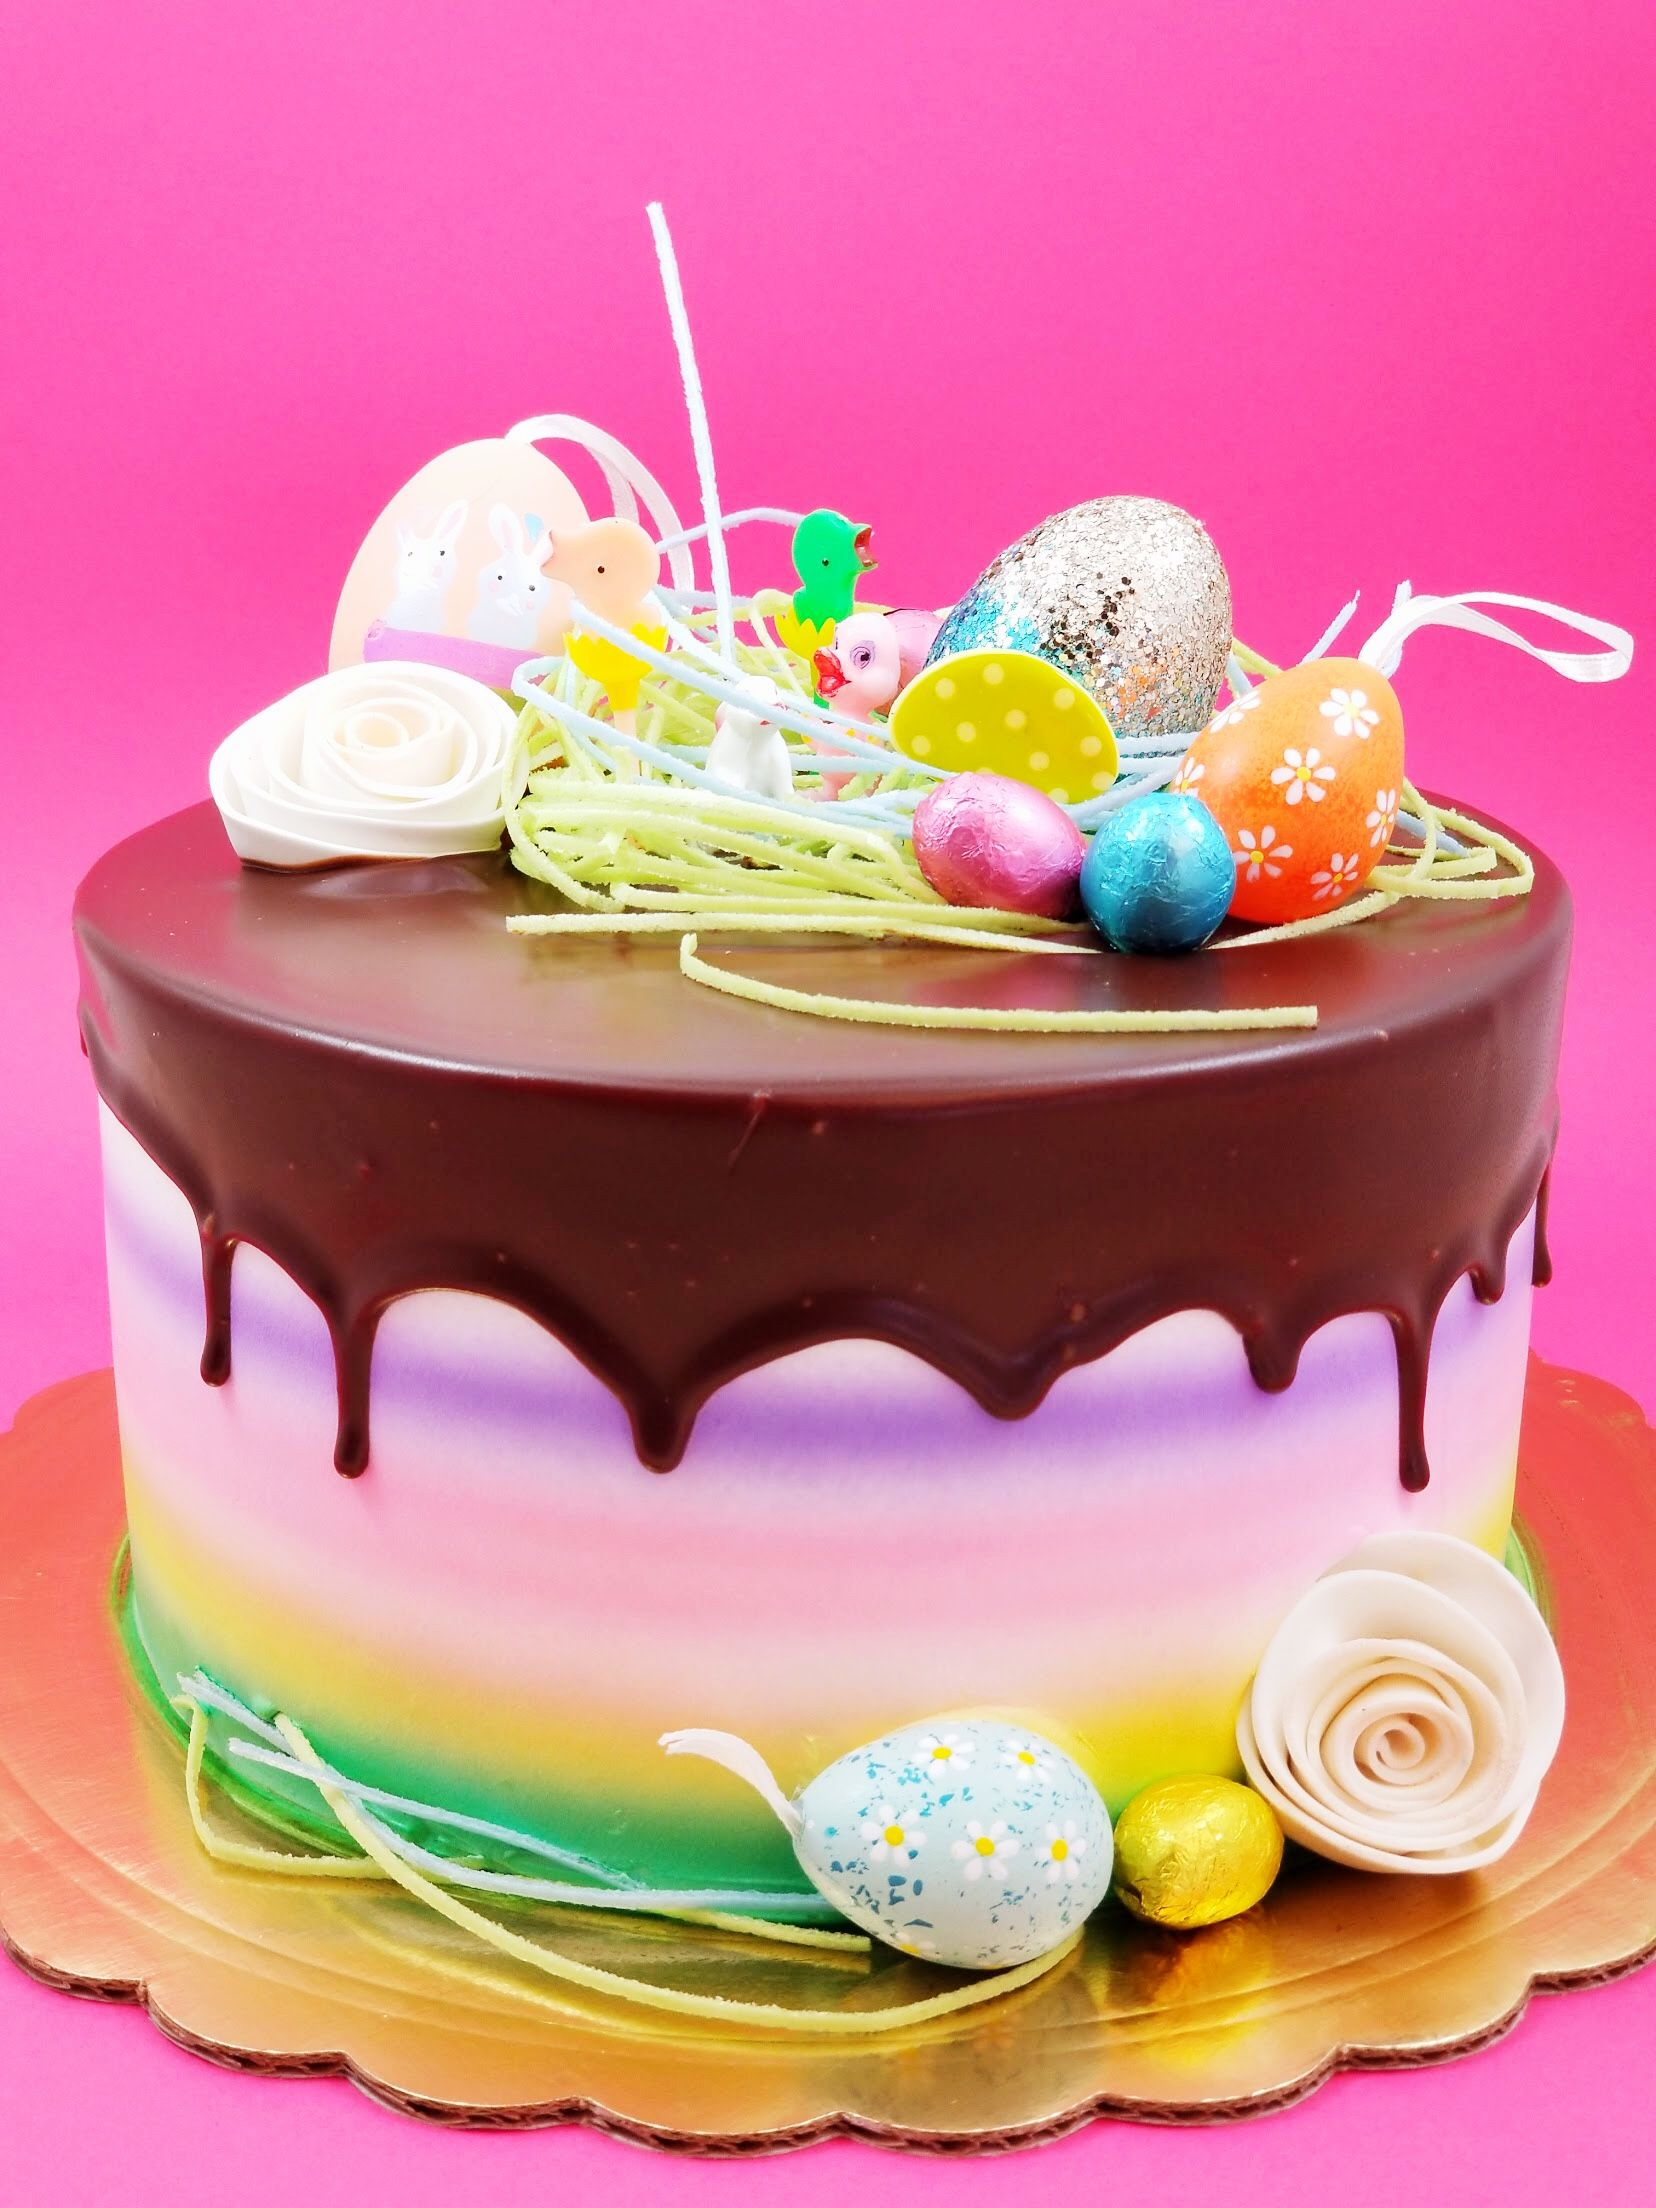 Adorable Easter Cakes Available For Delivery Within Los Angeles At ArtsBakeryGlendale